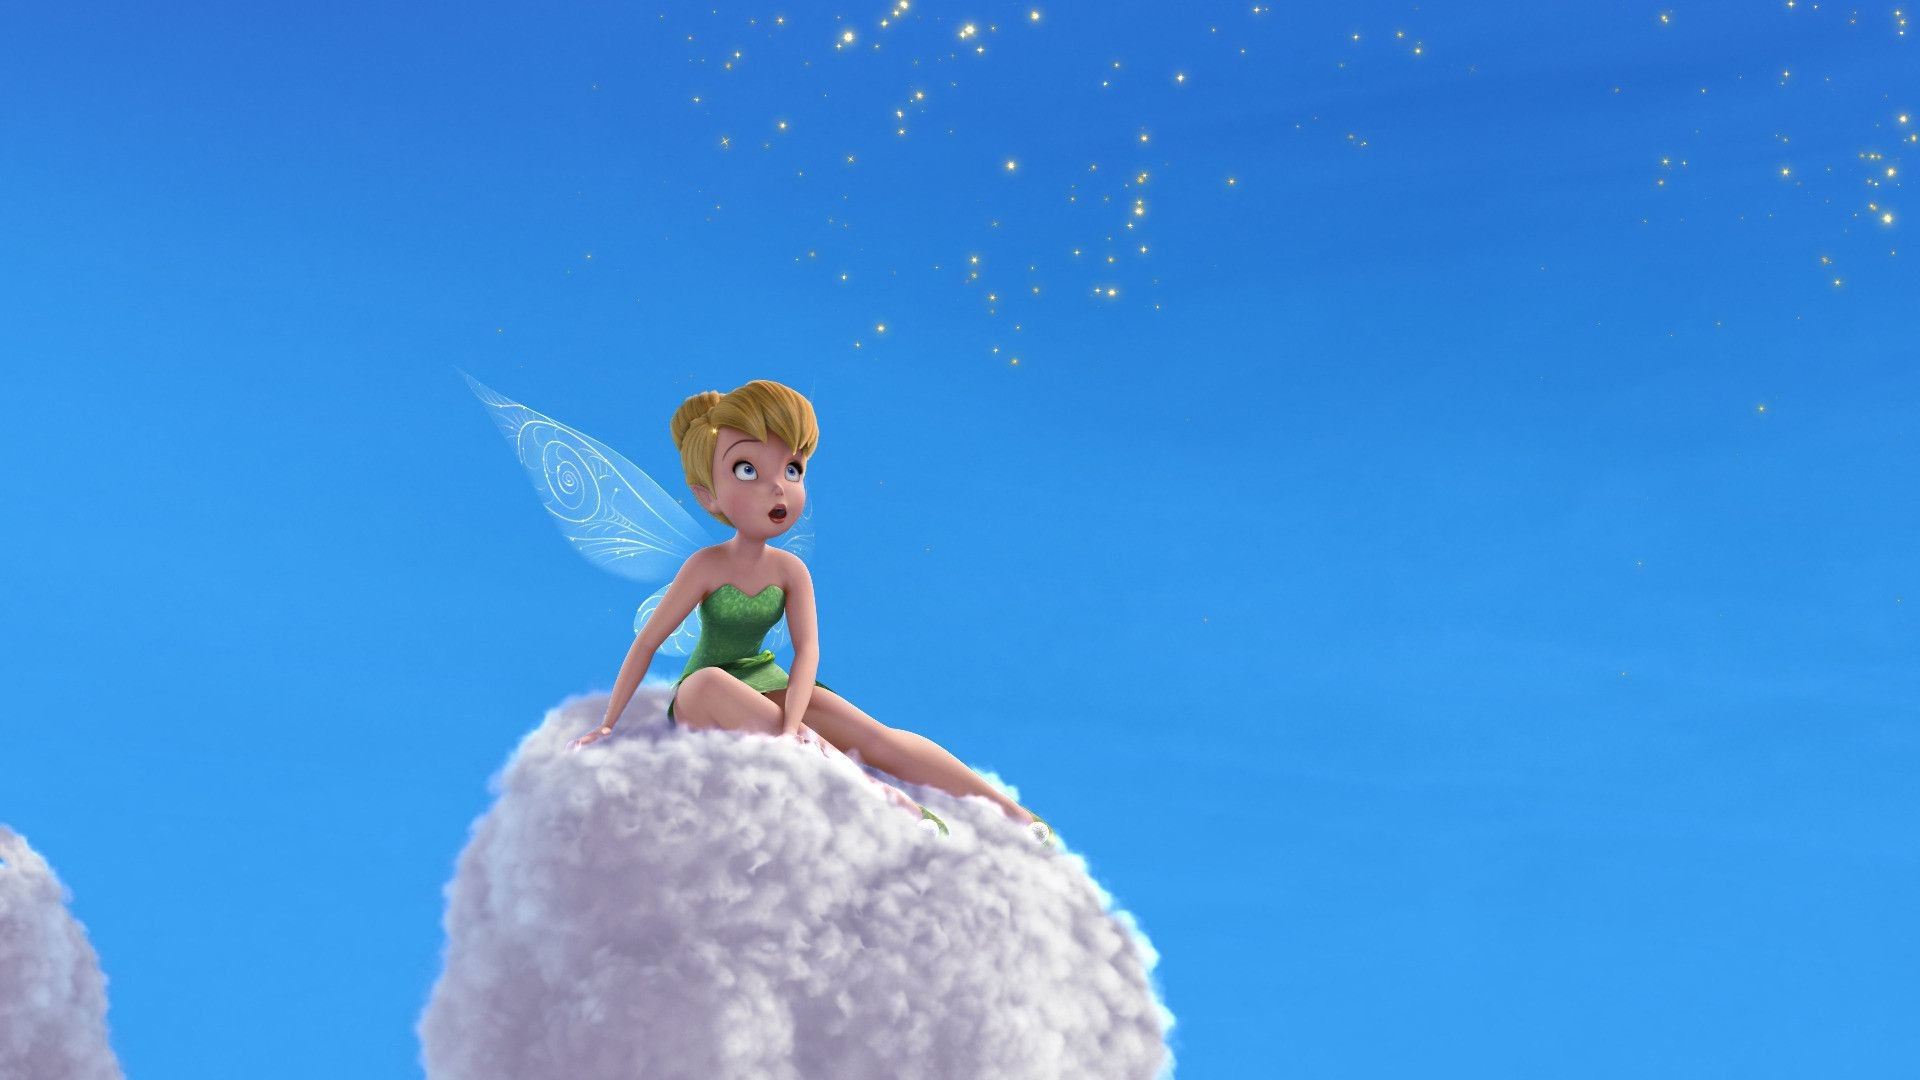 1920x1080 Desktop Backgrounds of TinkerBell 12 - HD wallpapers backgrounds